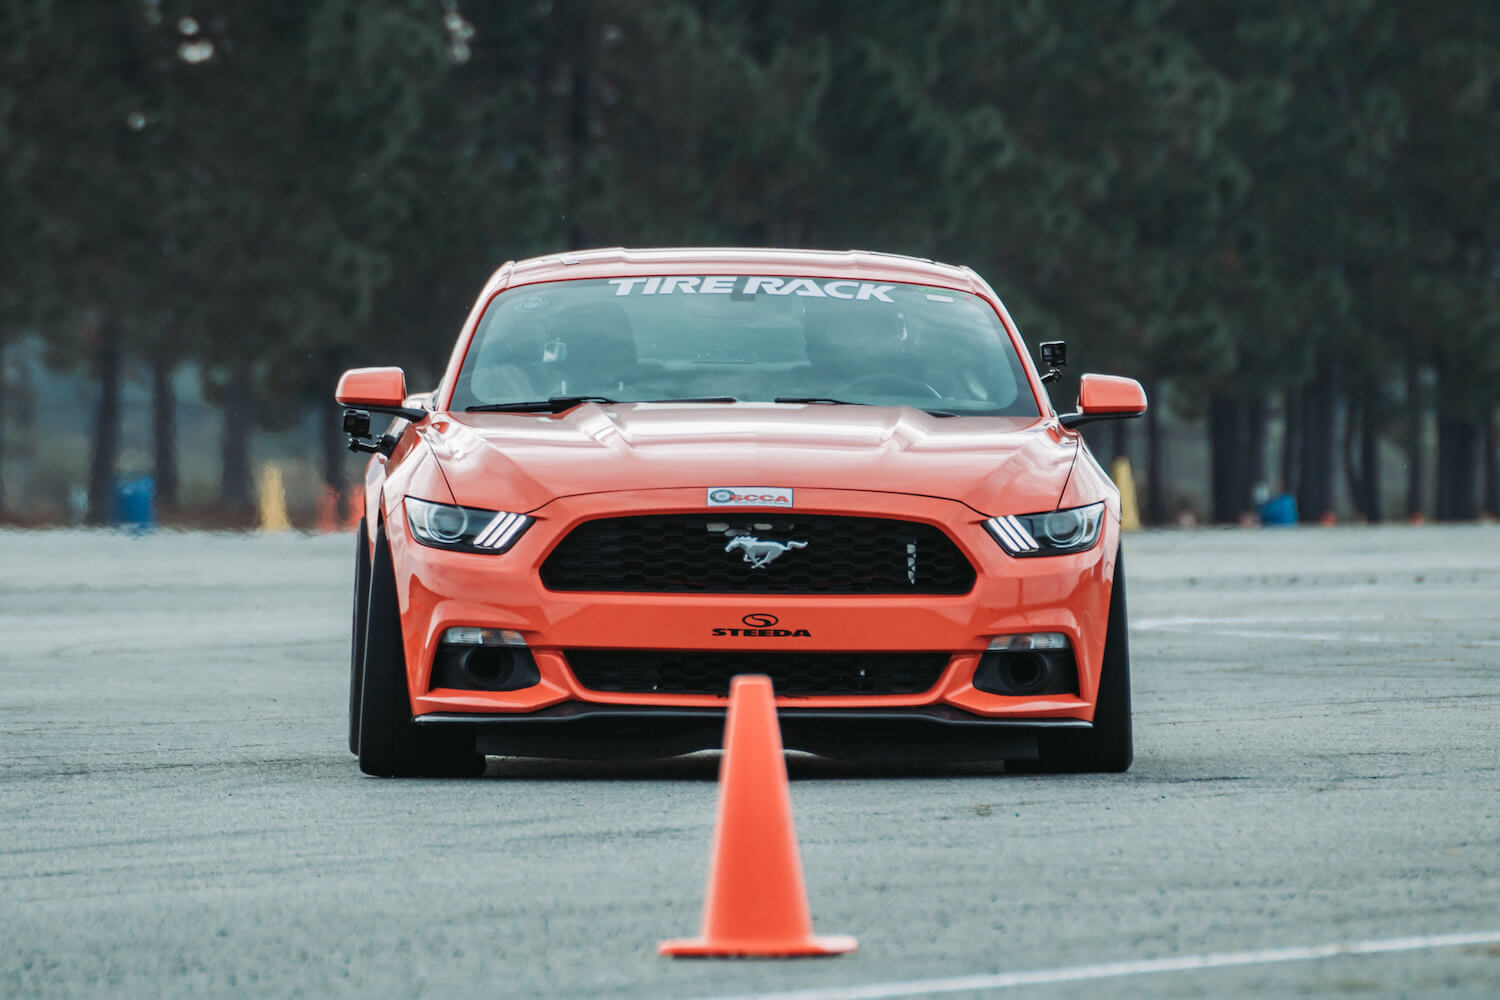 Mustang EcoBoost Autocross Car